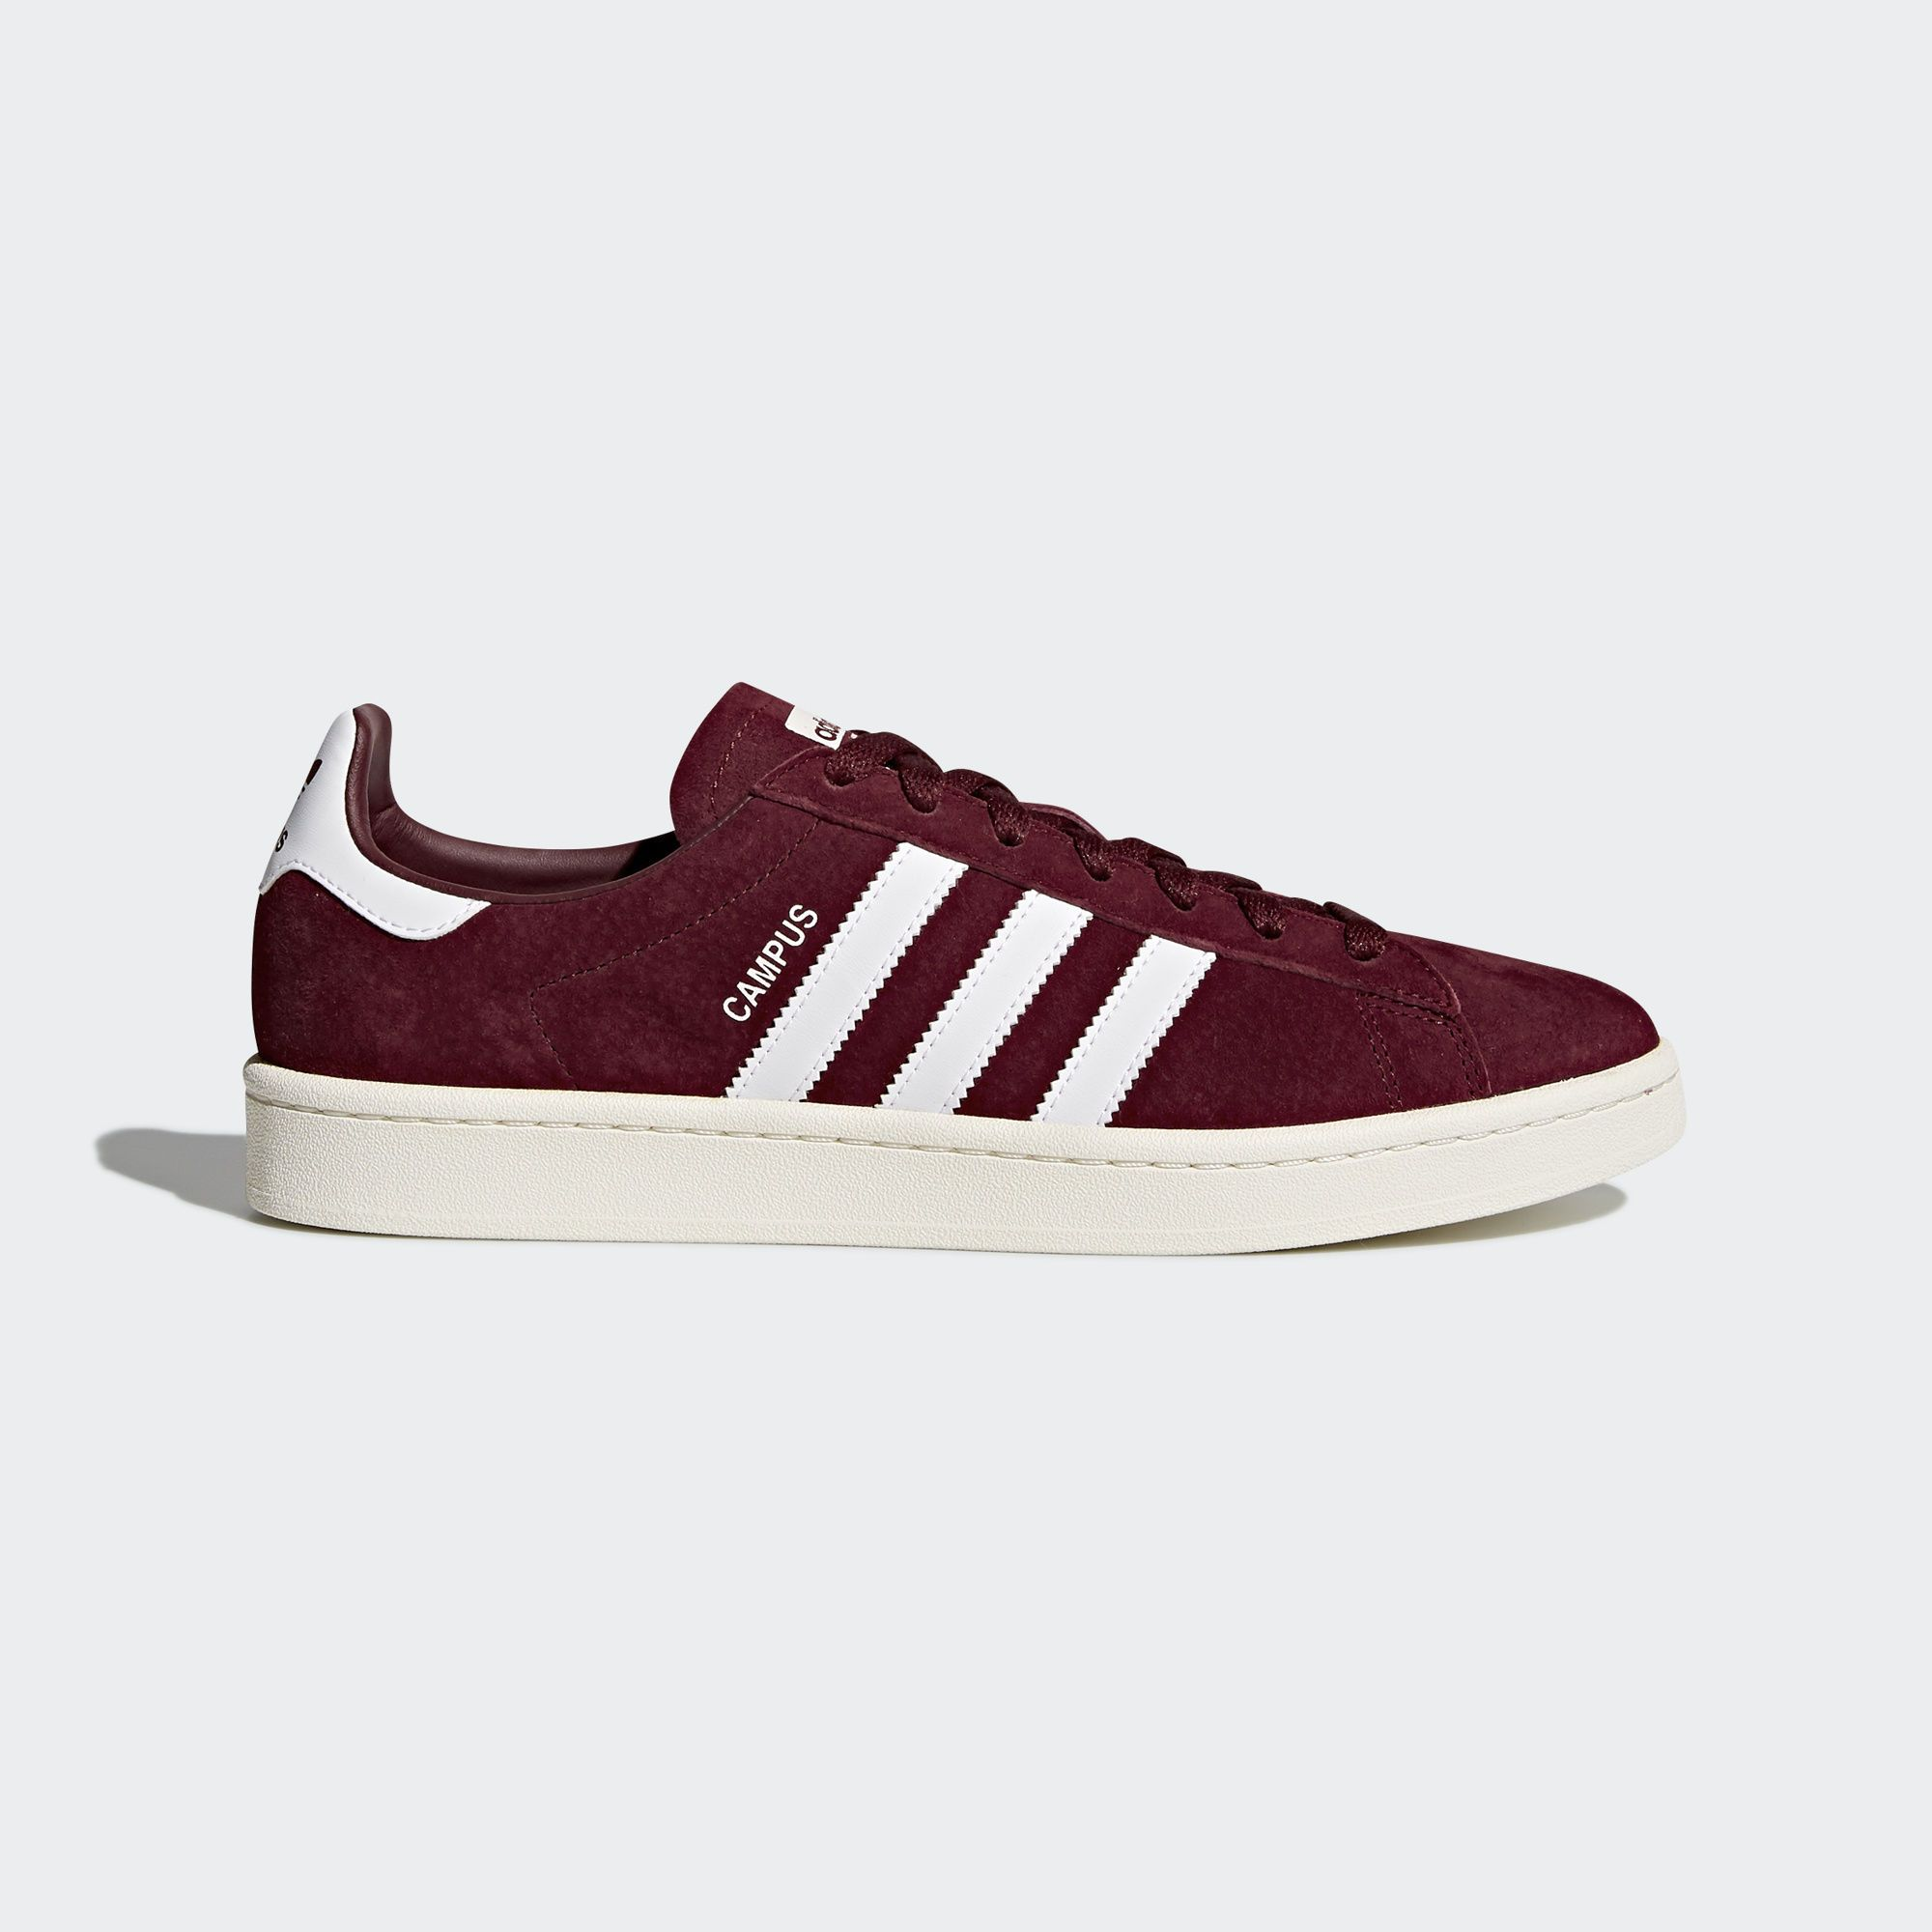 Campus Shoes Burgundy 4 Mens in 2019 | Adidas